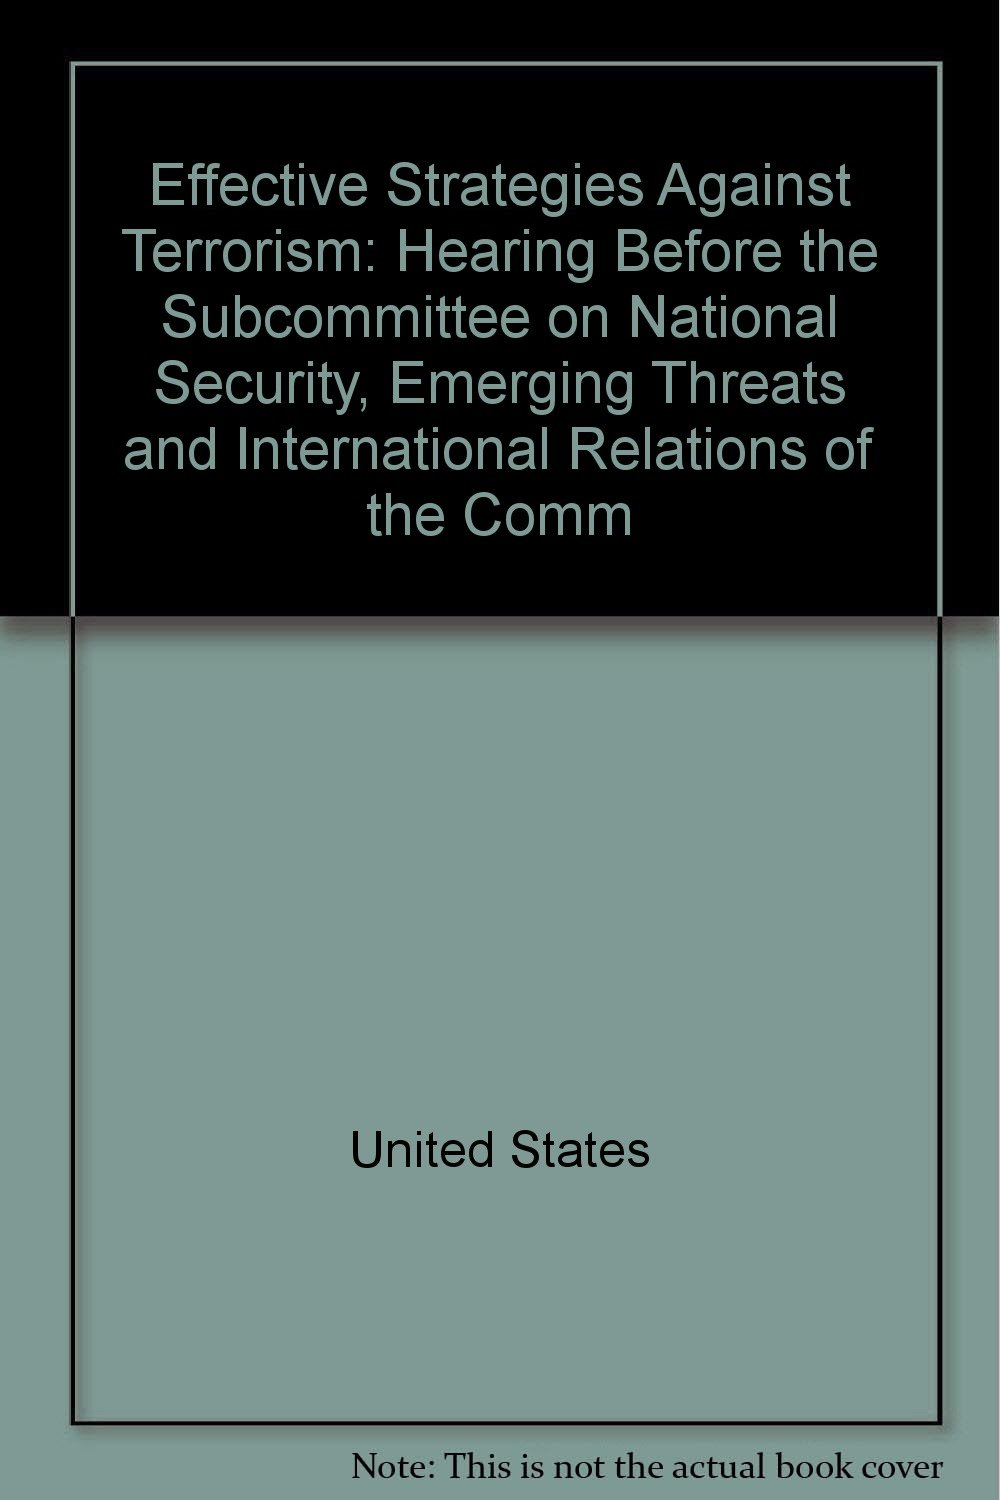 Effective Strategies Against Terrorism: Hearing Before the Subcommittee on National Security, Emerging Threats and International Relations of the Comm ebook